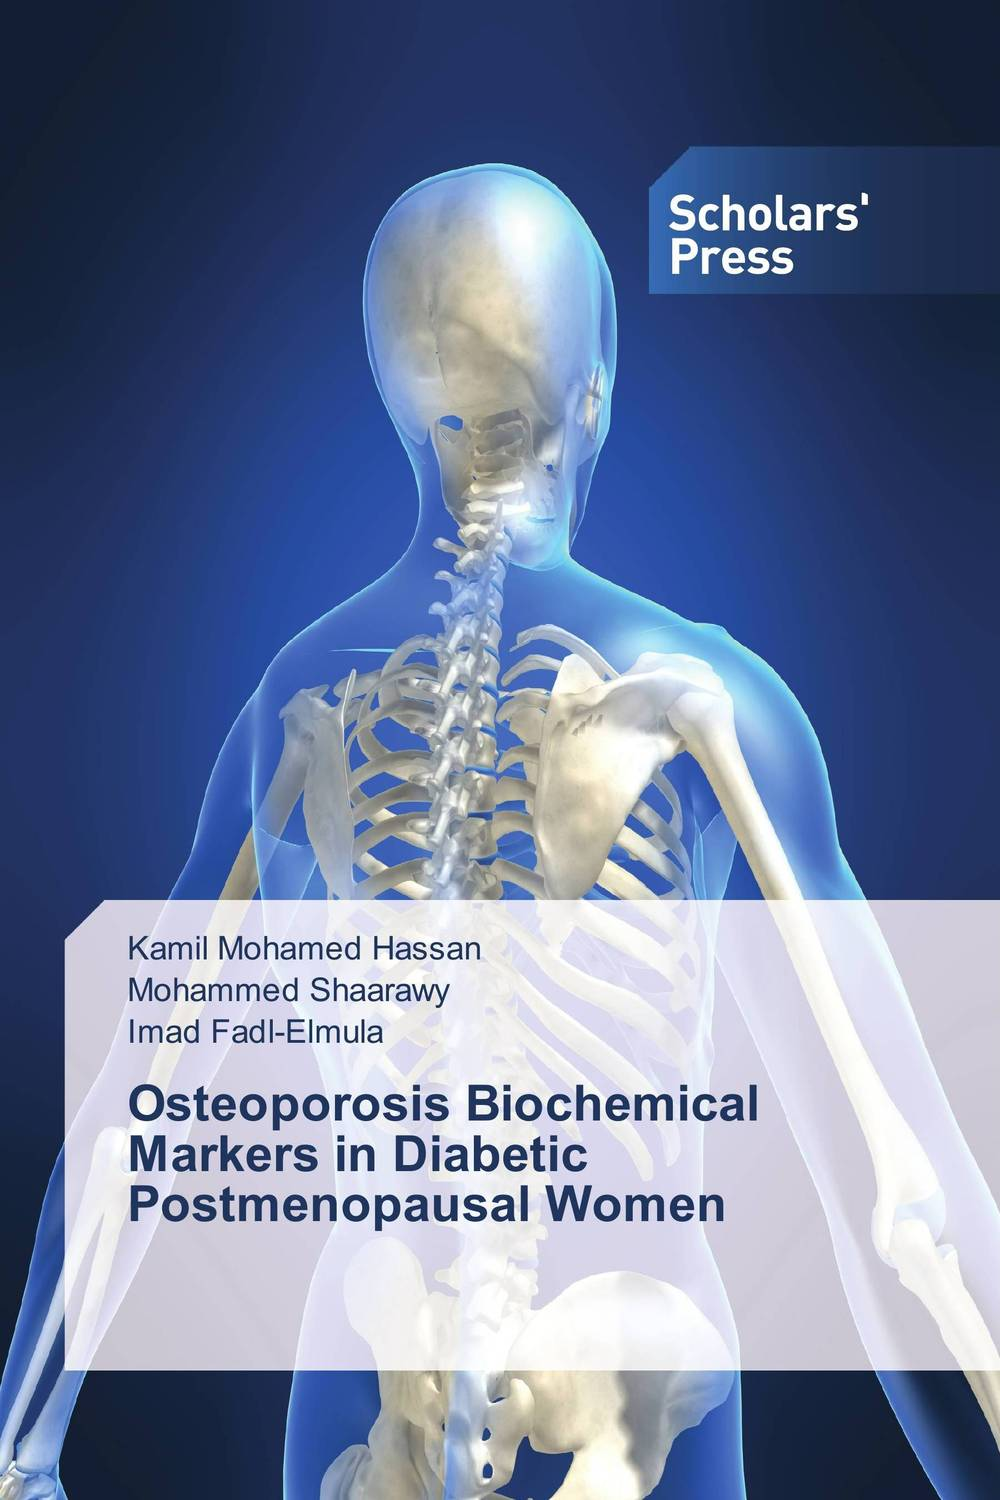 Osteoporosis Biochemical Markers in Diabetic Postmenopausal Women rutin and diabetic gastropathy